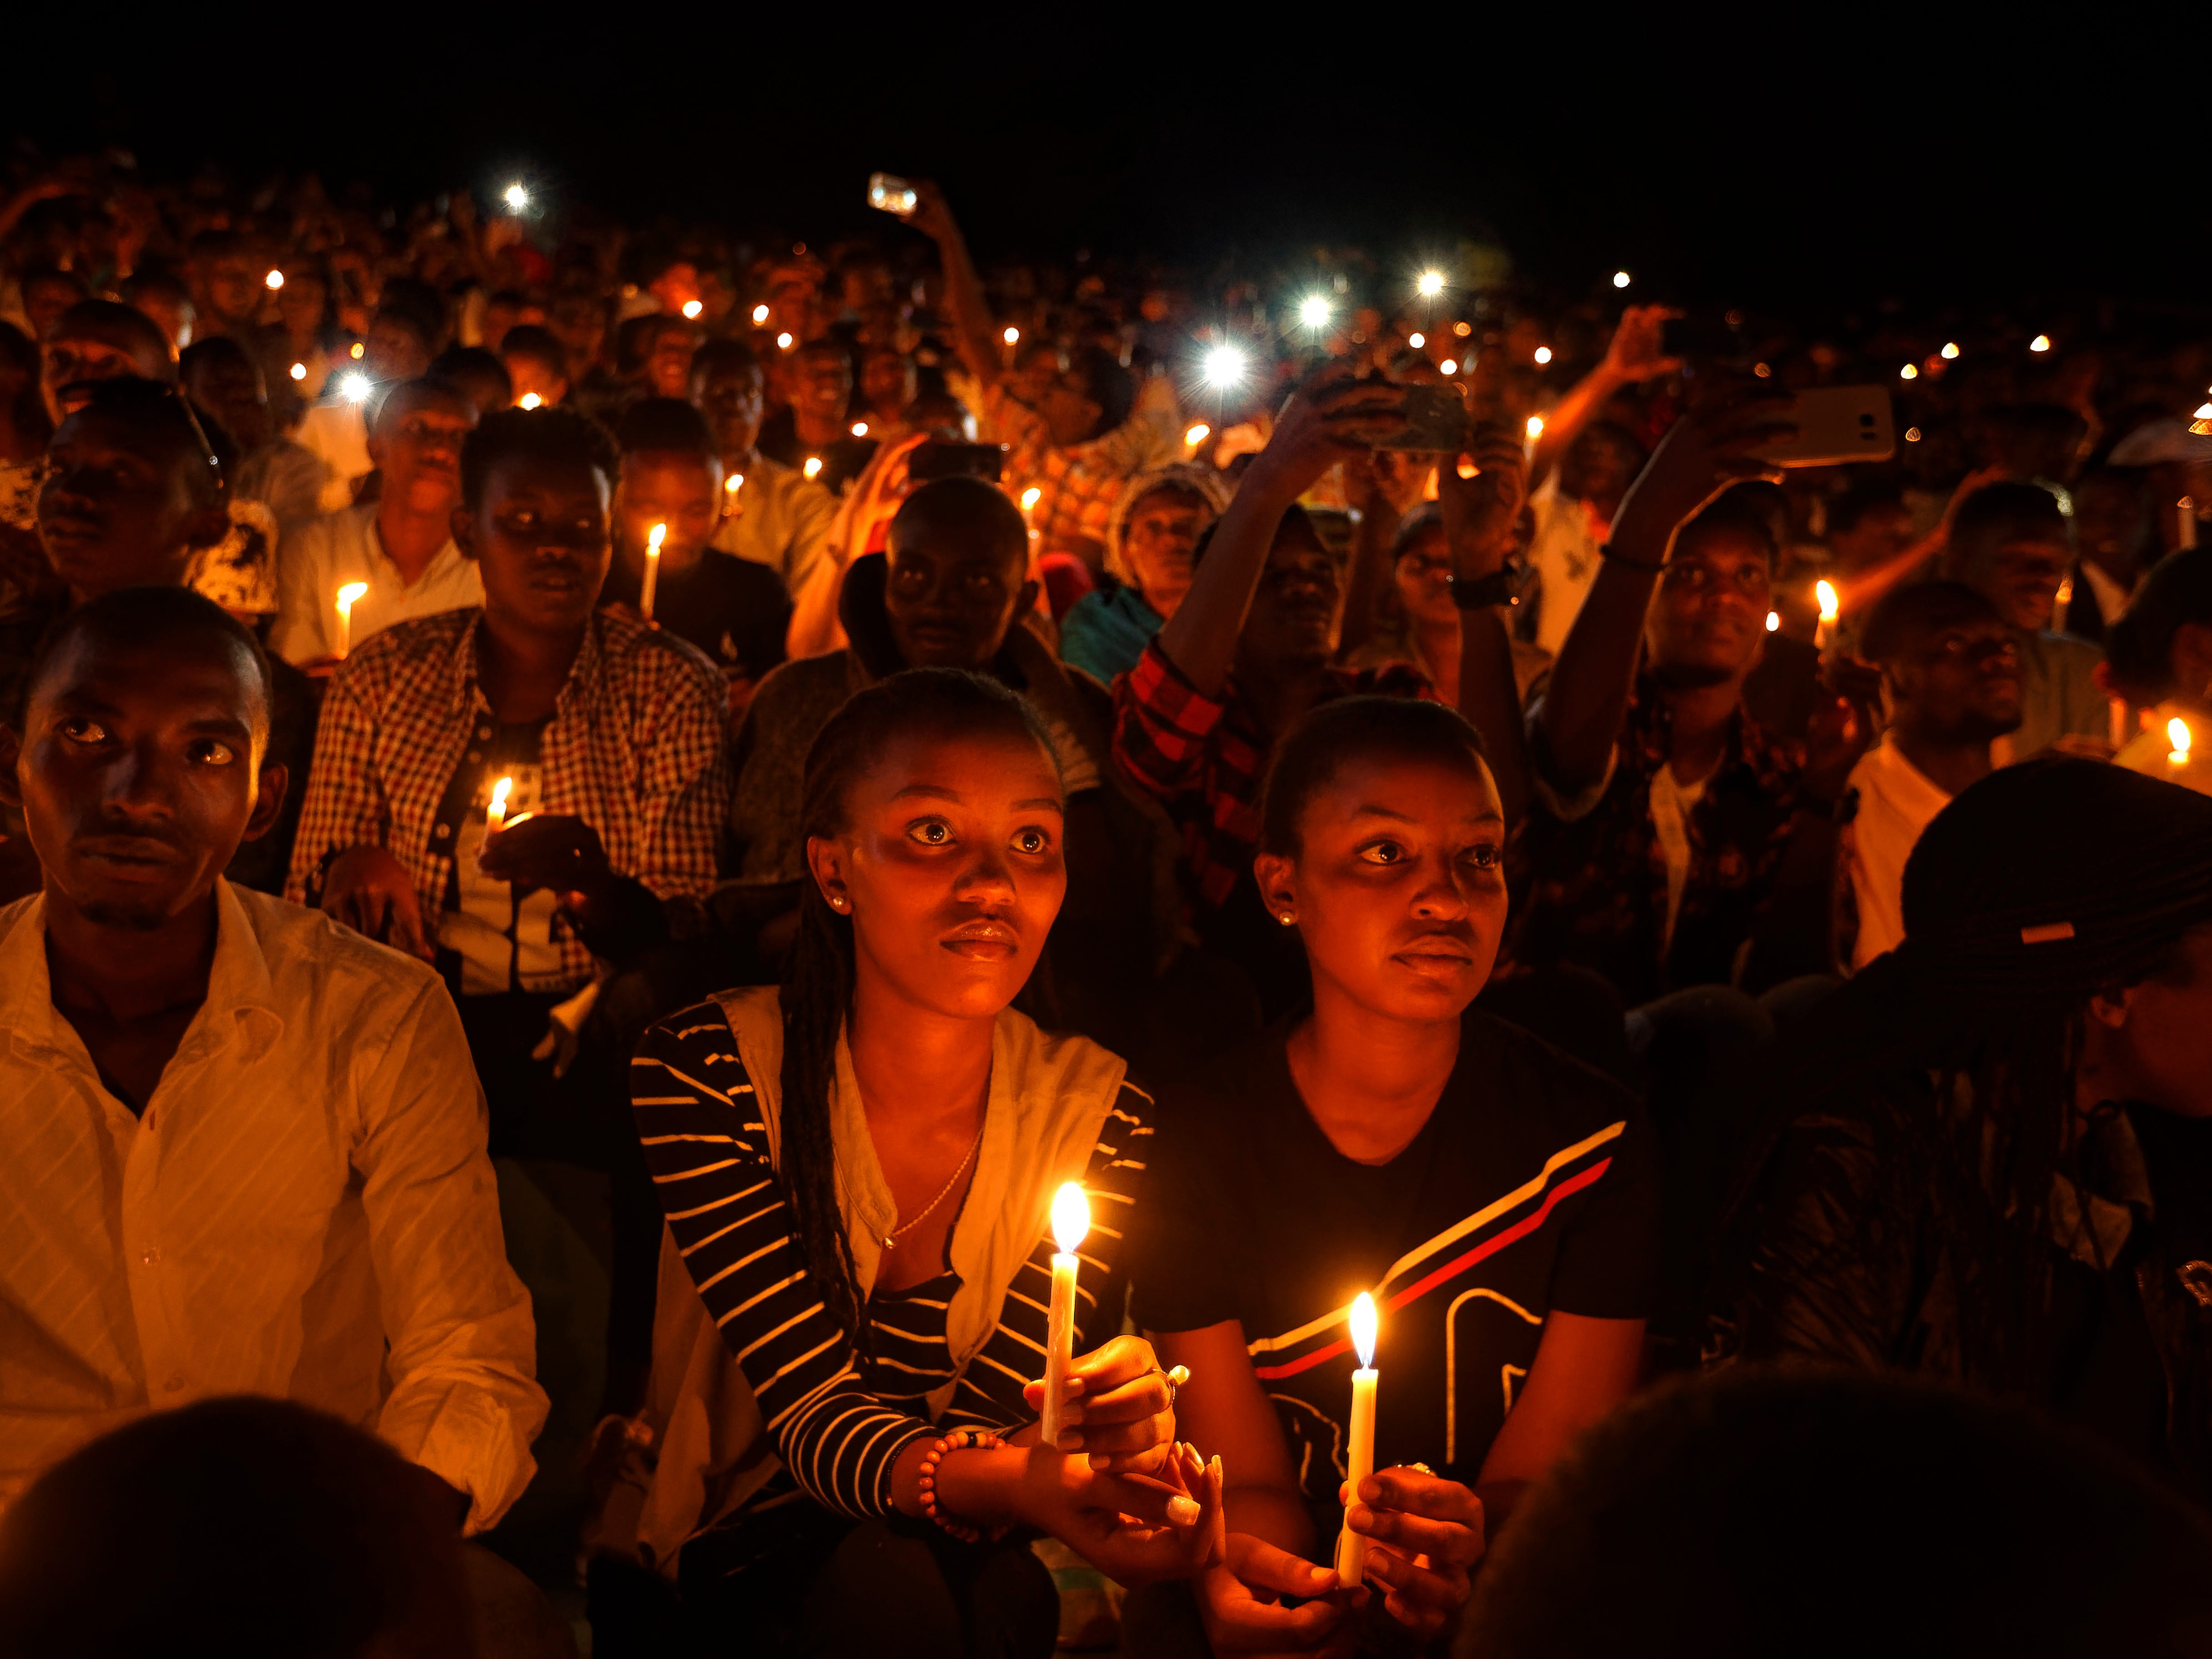 Rwandans sitting in the stands hold candles at a vigil during the memorial service at Amahoro stadium in the capital Kigali, Rwanda Sunday, April 7, 2019. Rwanda is commemorating the 25th anniversary of when the country descended into an orgy of violence in which some 800,000 Tutsis and moderate Hutus were massacred by the majority Hutu population over a 100-day period in what was the worst genocide in recent history.